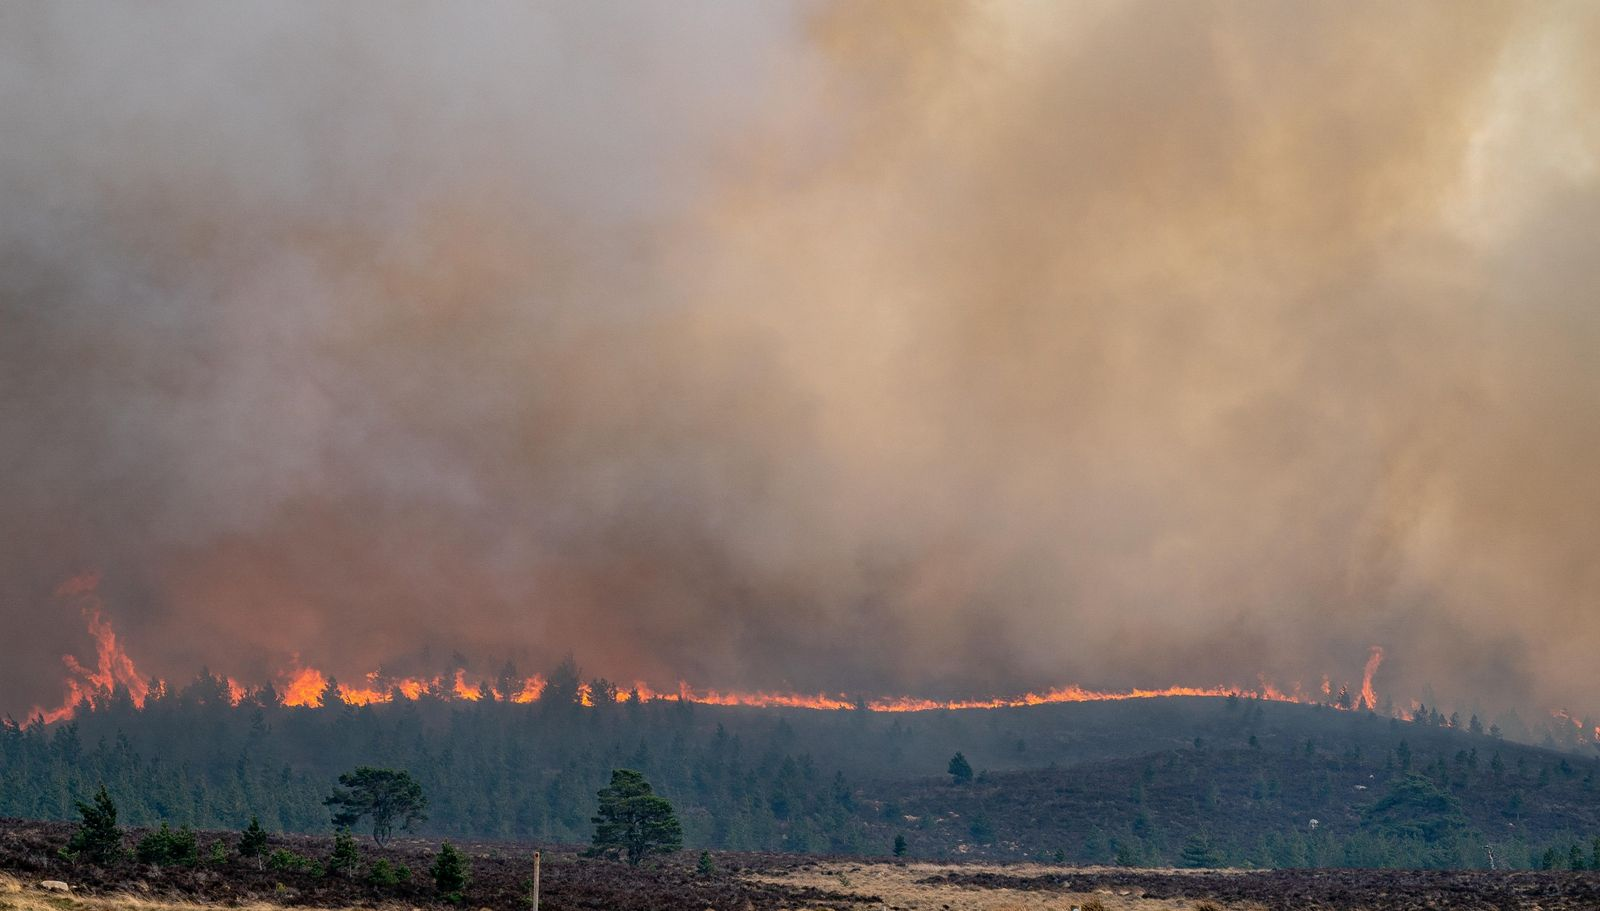 April 2019, Moray: the wildfire front was battled by firefighters, estate workers and volunteers. Dry conditions ...